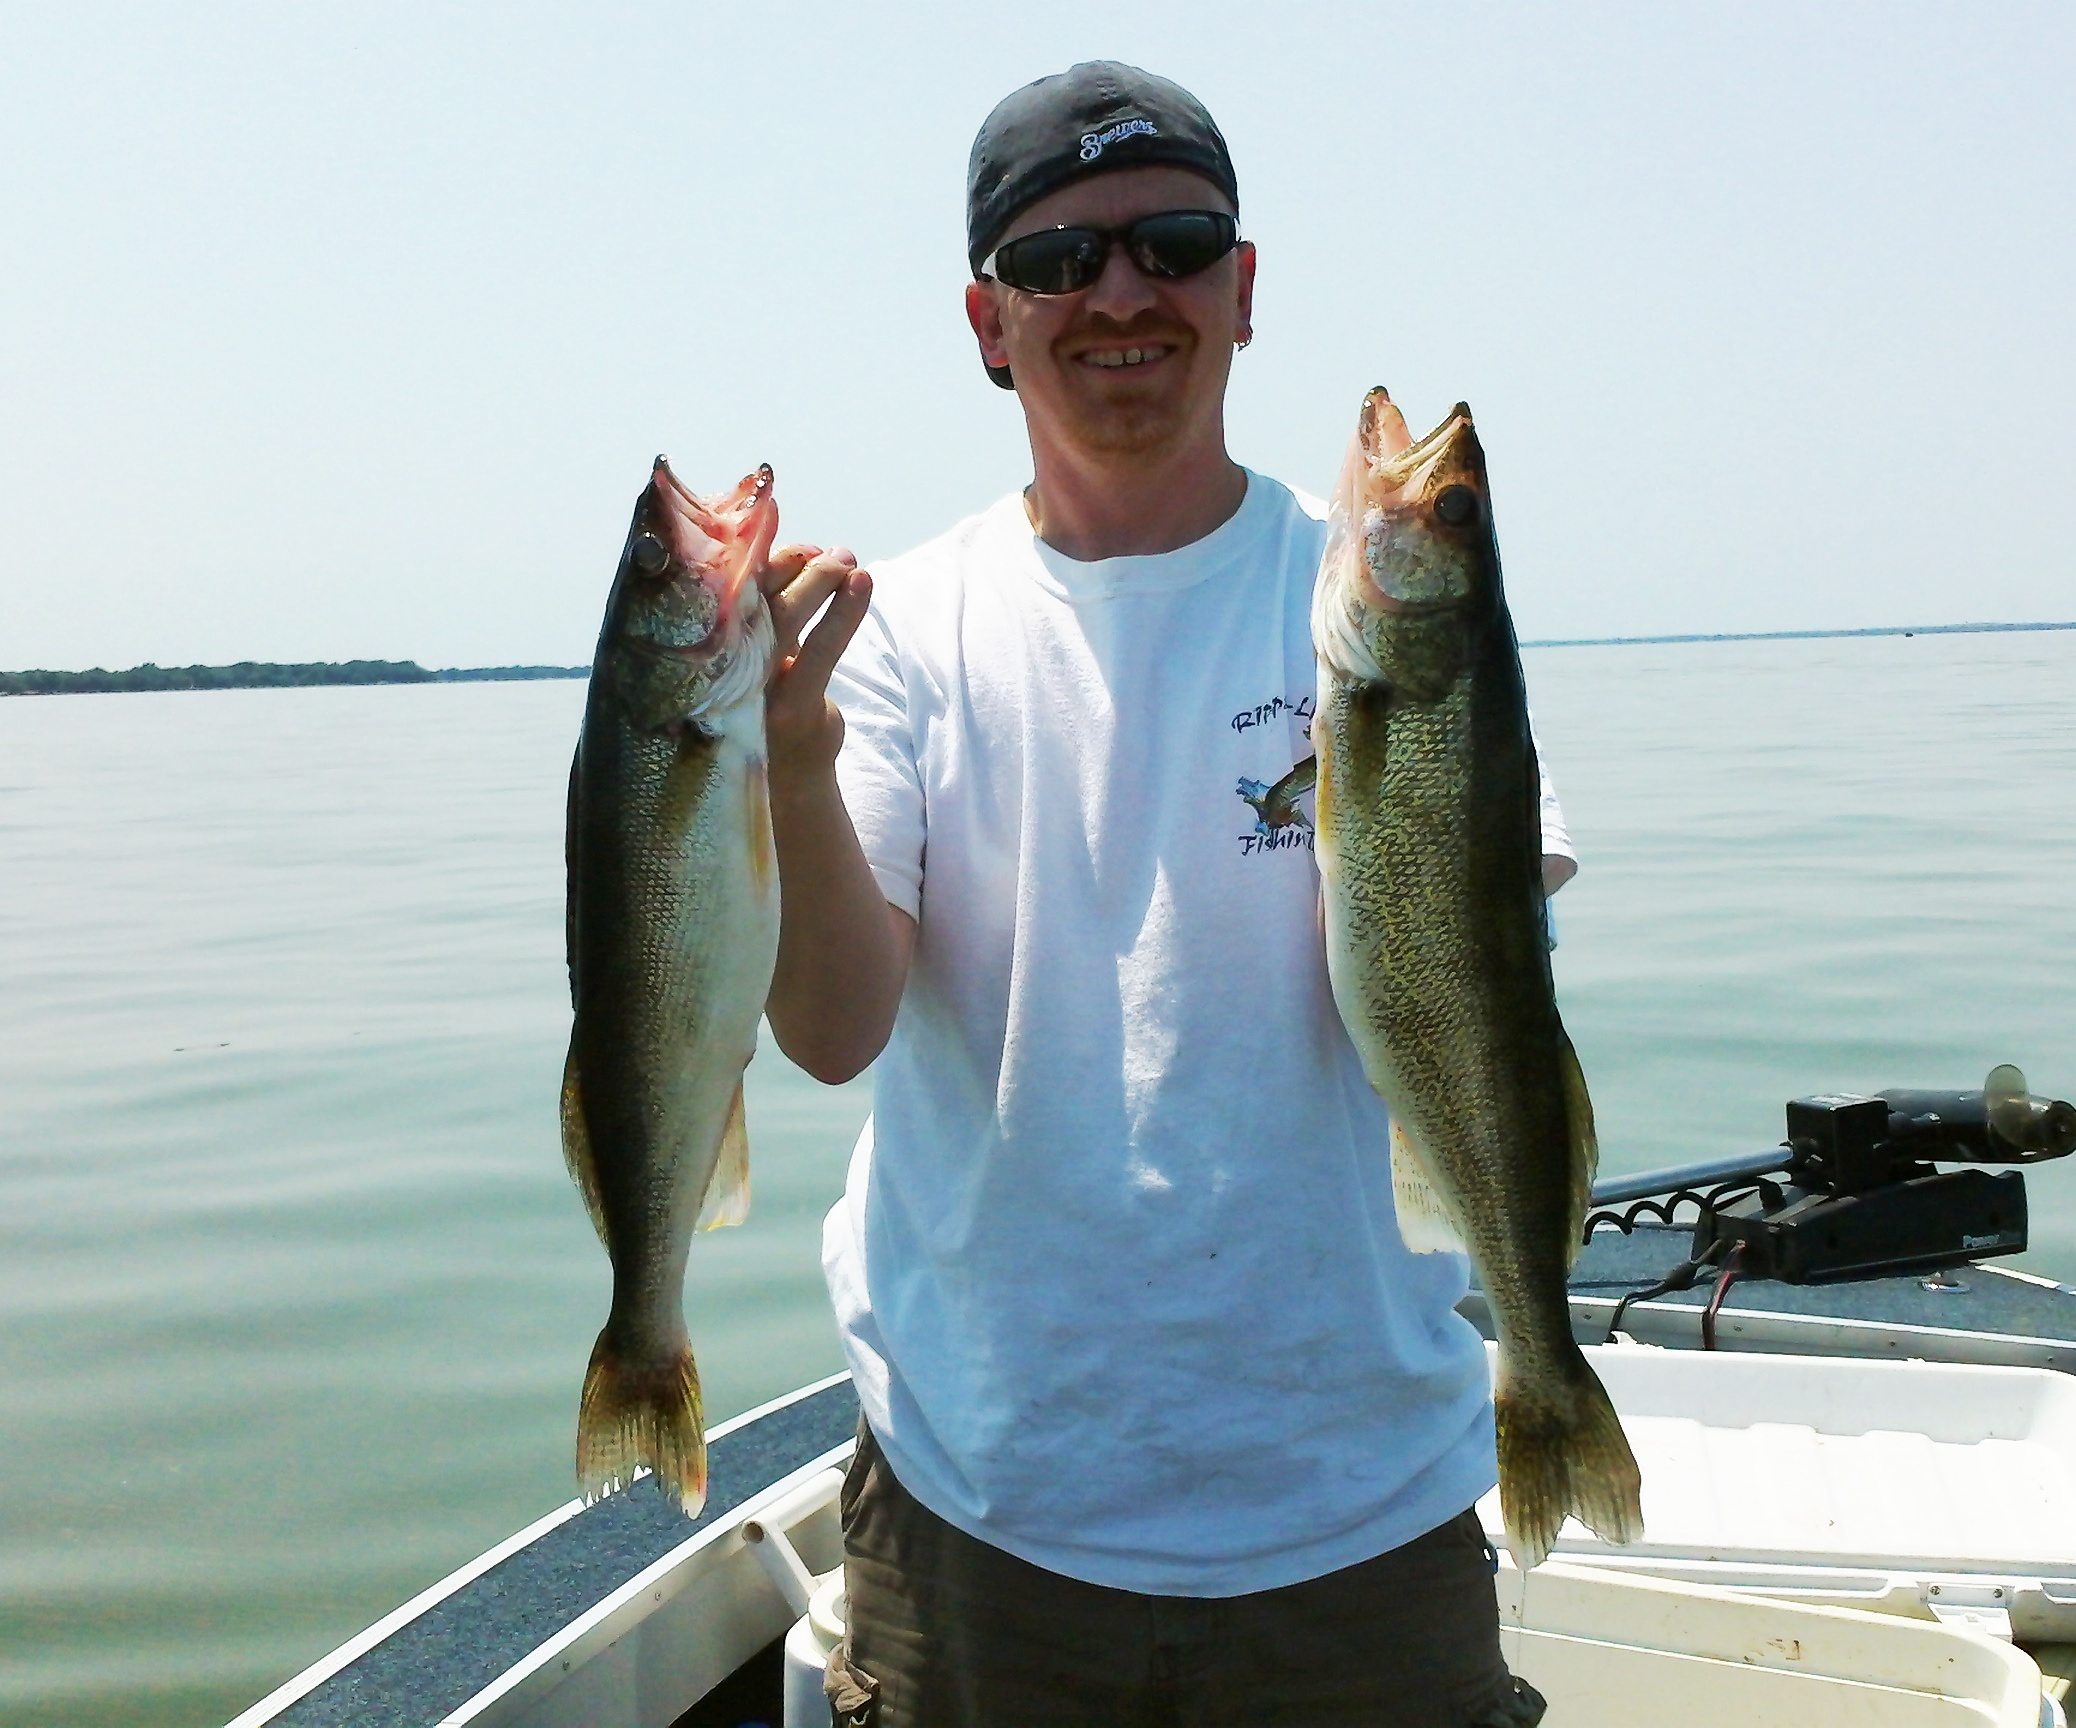 Mike Kosanke with 2 big walleyes caught on Lake Winnebago in Wisconsin